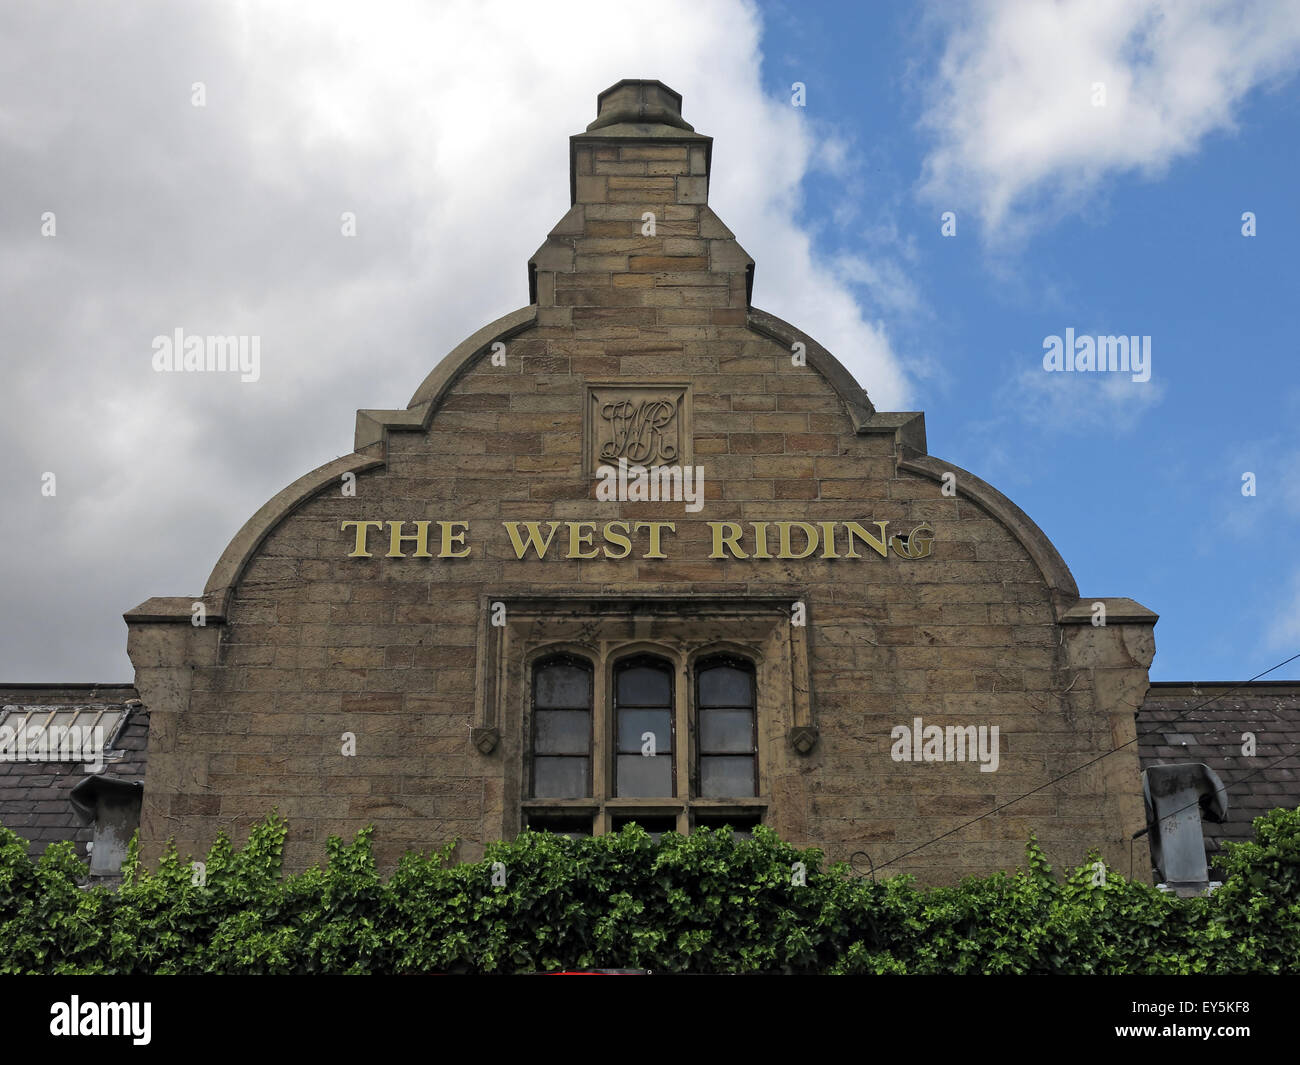 West Riding Pub, Dewsbury Railway Station, West Yorkshire, England, UK Stock Photo